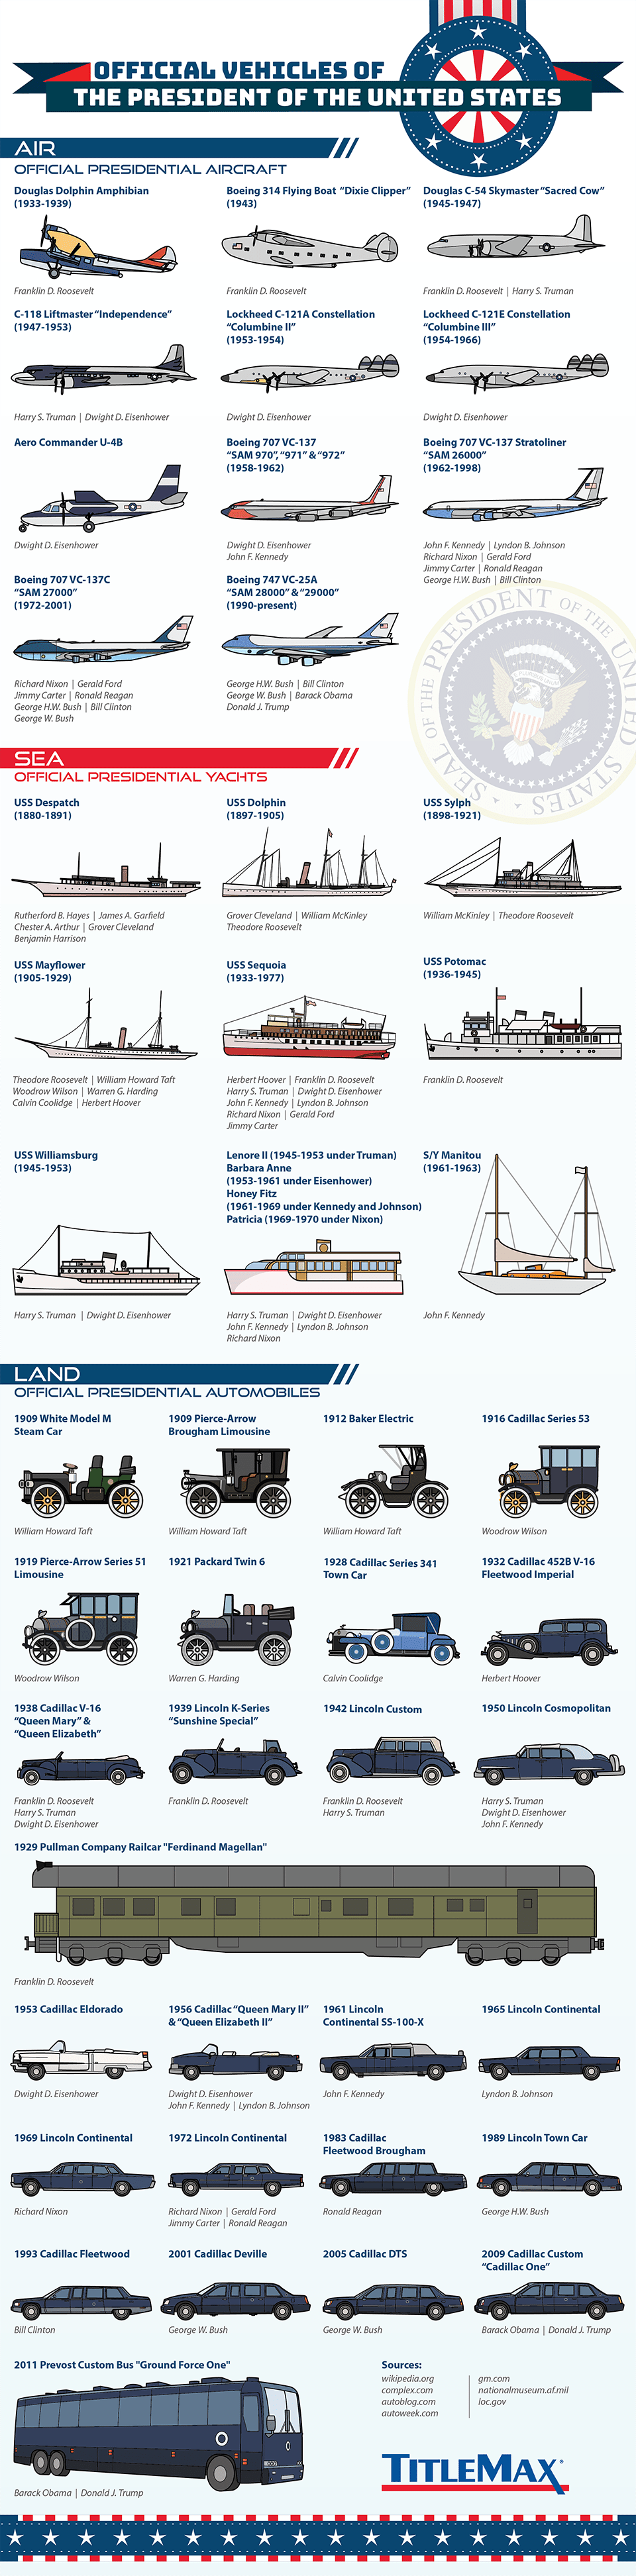 US President\'s Vehicles Throughout History - Land, Sea & Air ...